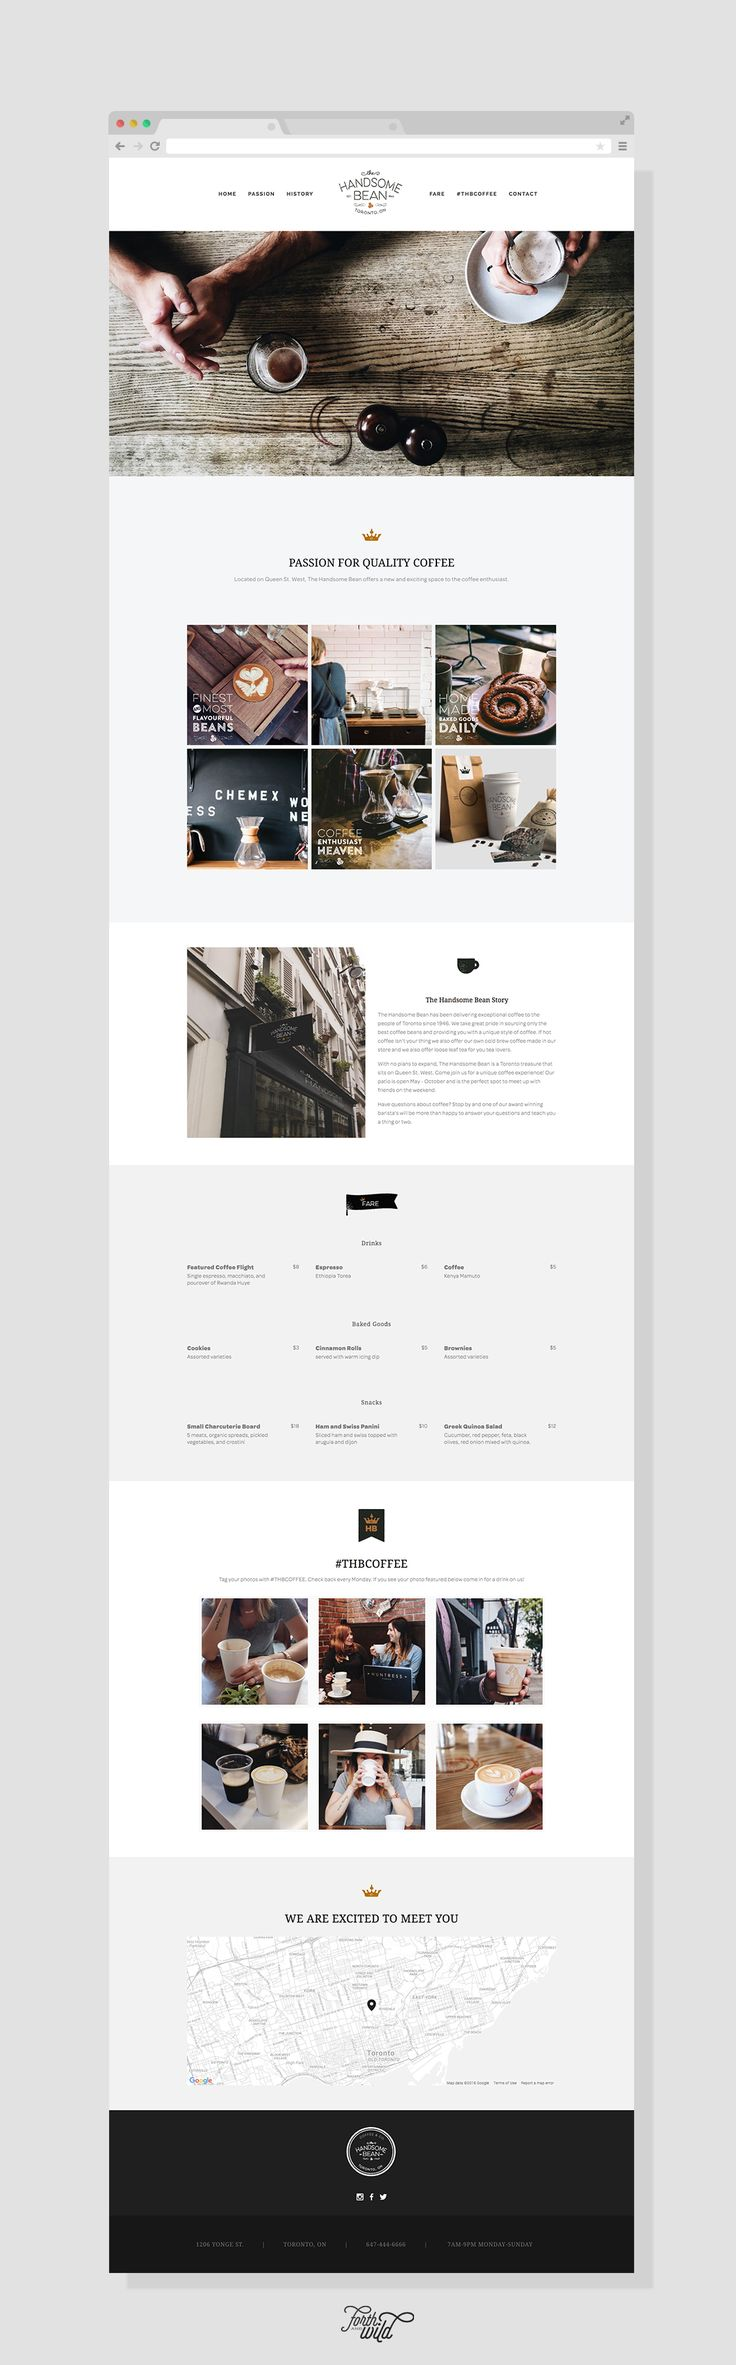 Website Design Ideas template 47150 architecture responsive website template with homepage slider geometric shapes web design ideas using icons The Handsome Bean Website Design Forth And Wild Studio